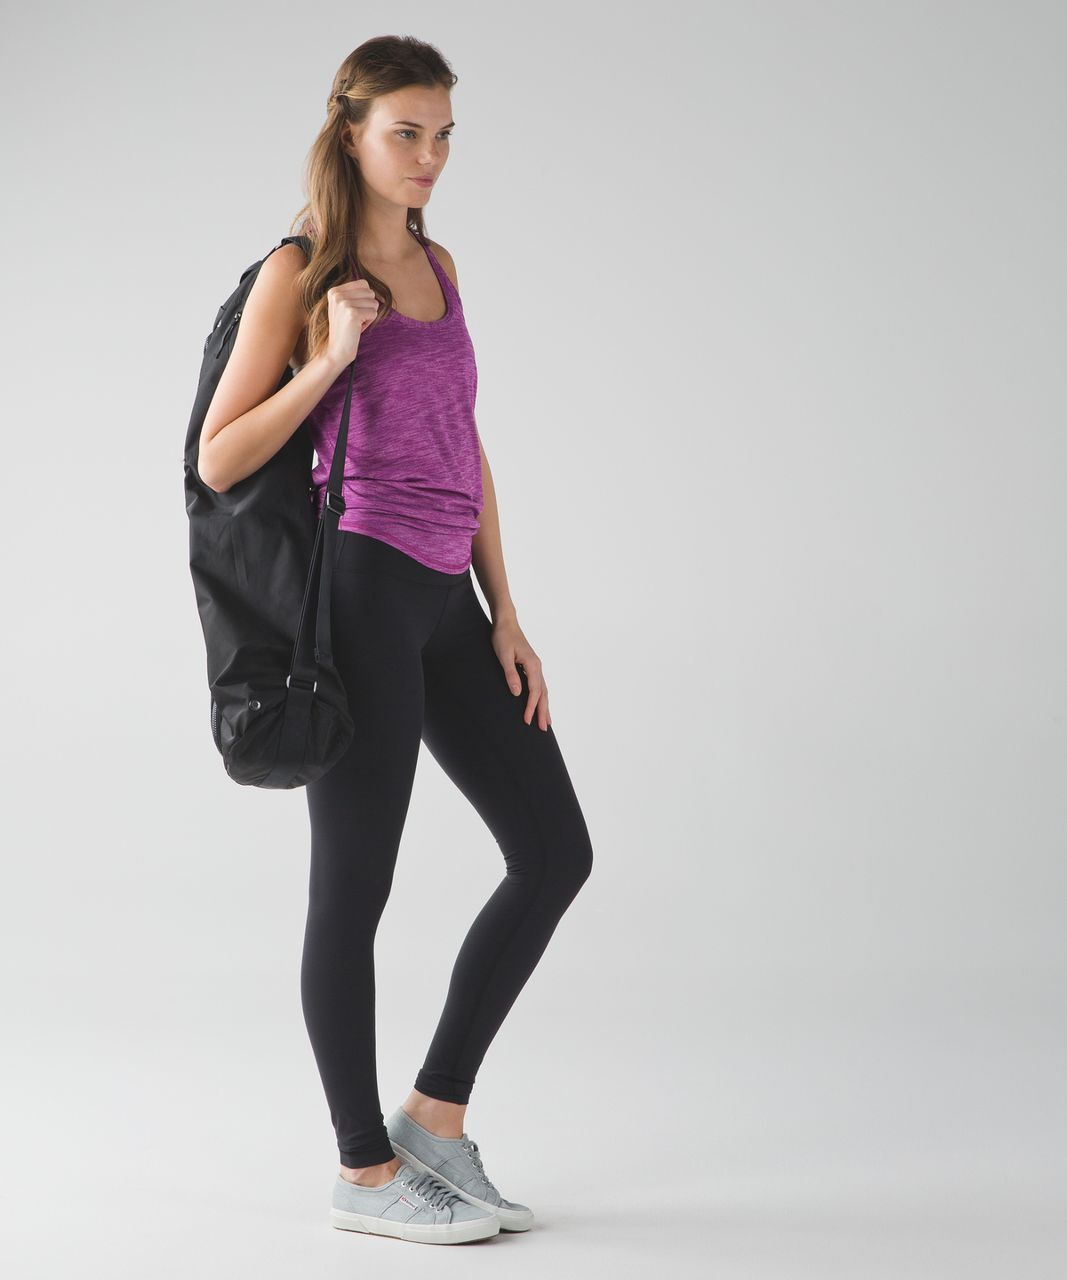 Lululemon Salute the Sun Tank - Heathered Regal Plum